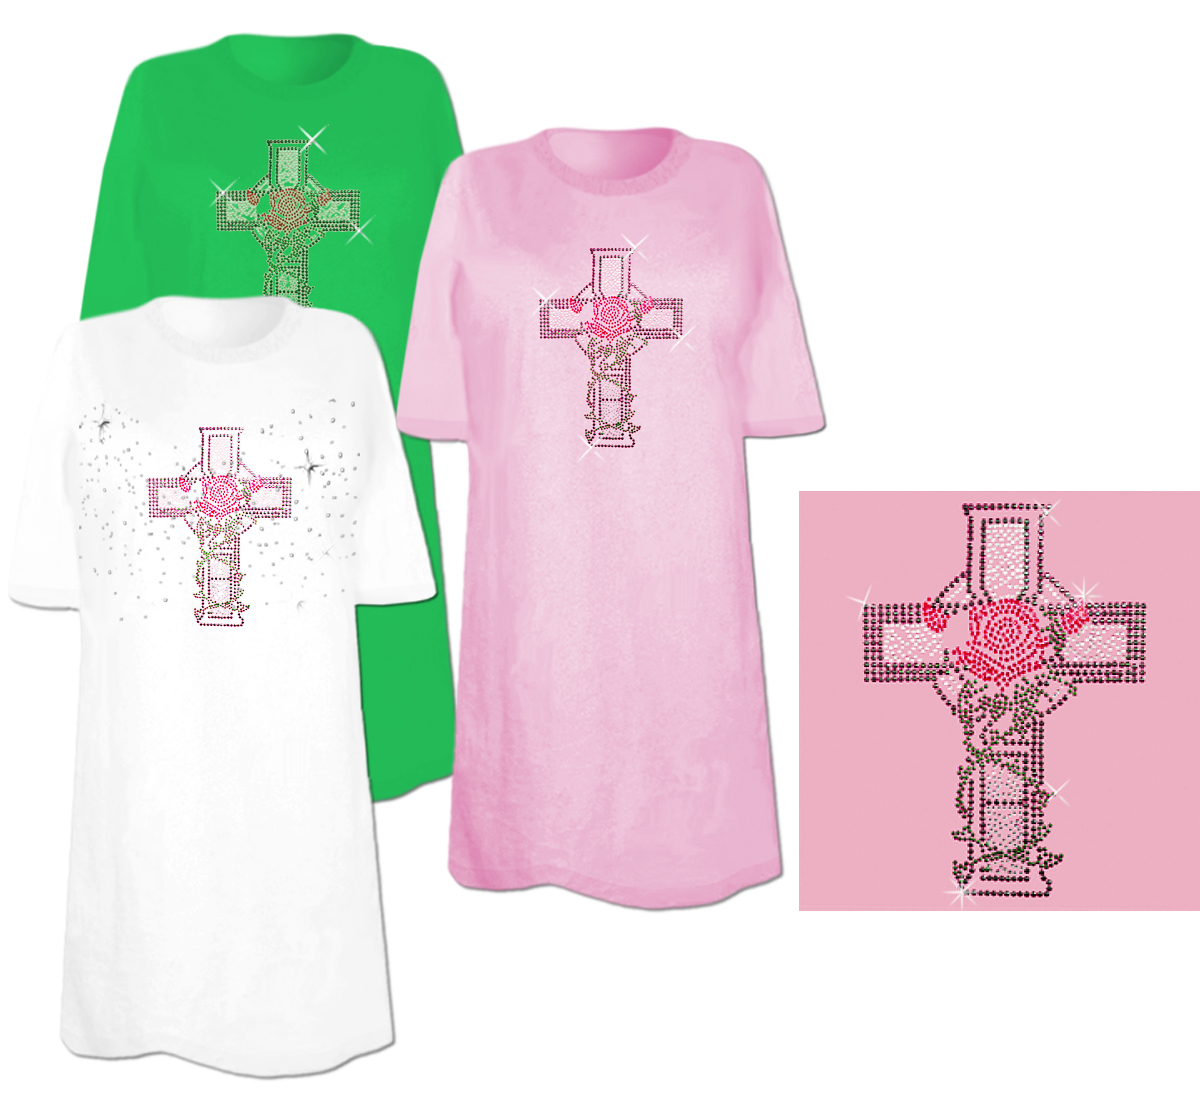 Sale cross with rose and vines rhinestone studs plus for 3x shirts on sale